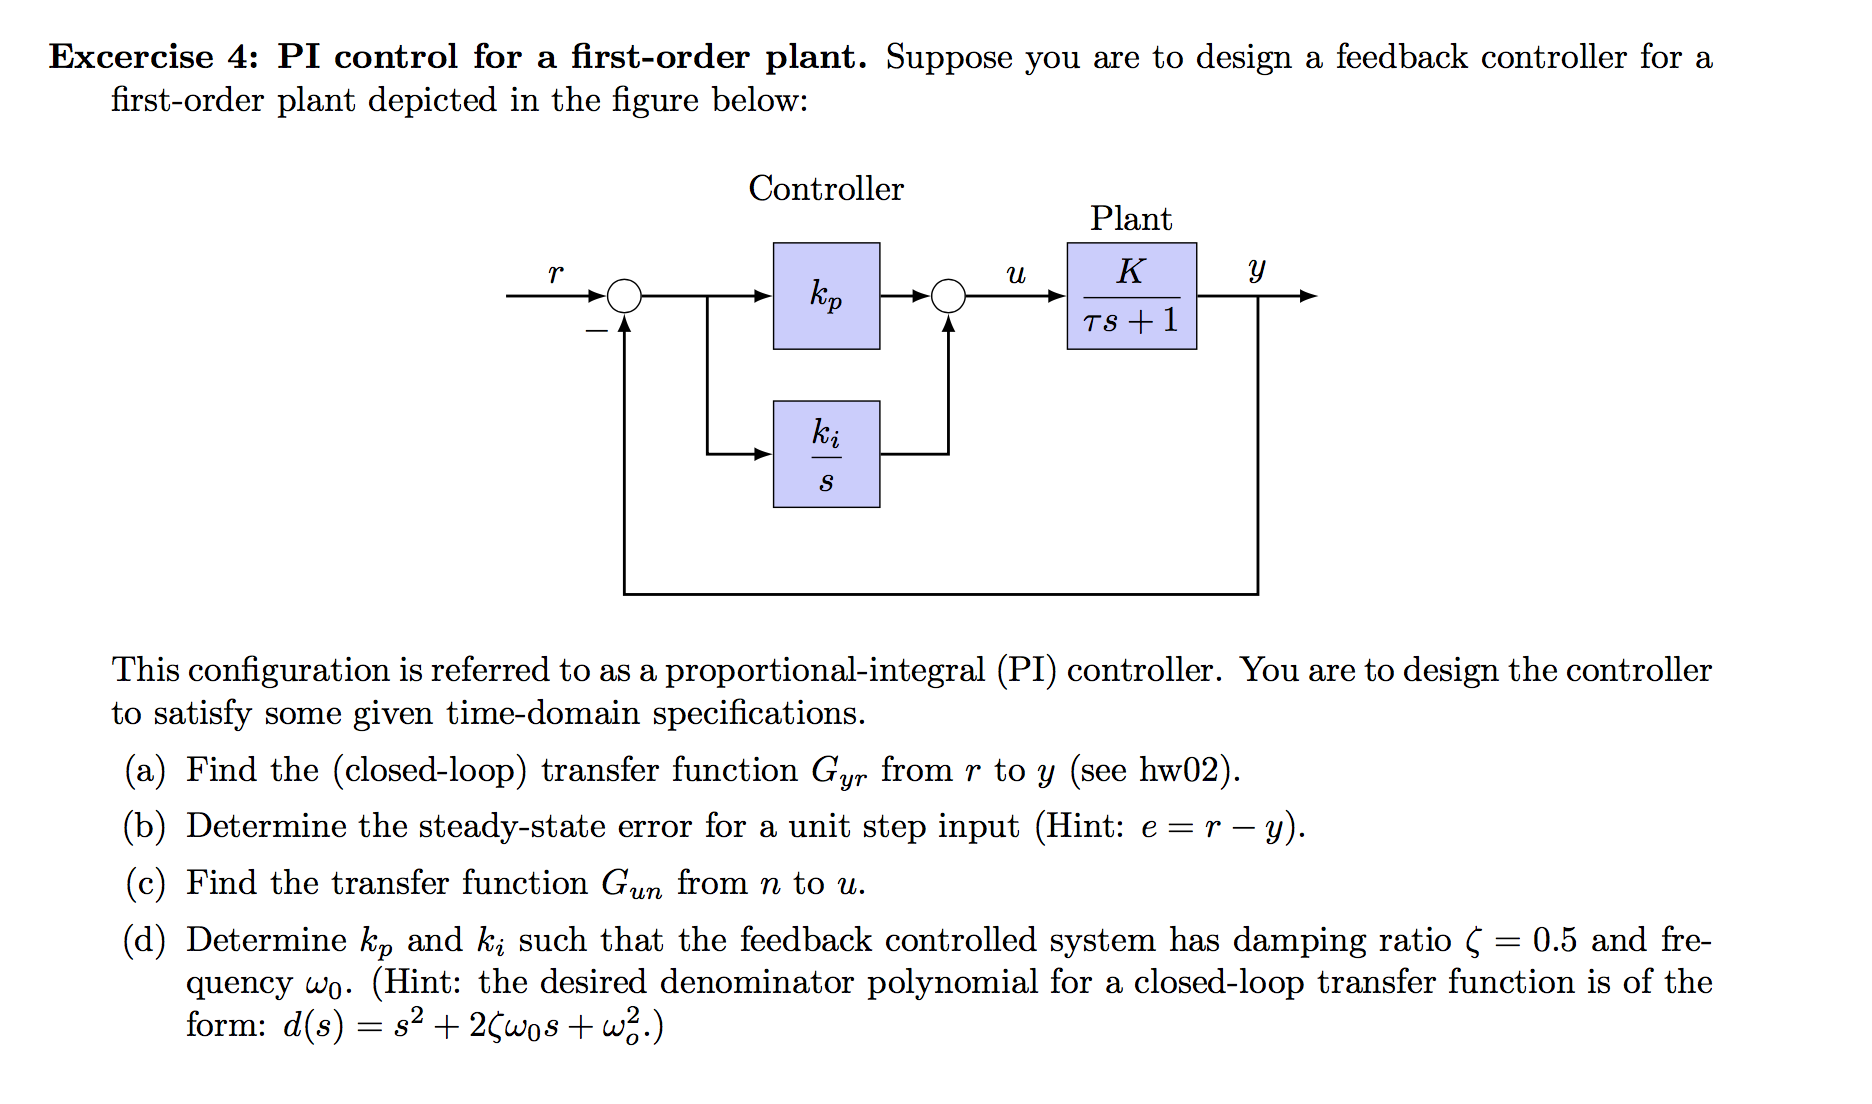 Excercise 4: PI control for a first-order plant. Suppose you are to design a feedback controller for a first-order plant depicted in the figure below: Controller Plant К y и Кр TS1 ki This configuration is referred to as a proportional-integral (PI) controller. You are to design the controller to satisfy some given time-domain specifications. (a) Find the (closed-loop) transfer function Gyr from r to y (see hw02) (b) Determine the steady-state error for a unit step input (Hint: e r - y). (c) Find the transfer function Gum from n to u (d) Determine kp and ki such that the feedback controlled system has damping ratio Ç = 0.5 and fre- quency wo. (Hint: the desired denominator polynomial for a closed-loop transfer function is of the form: d(s) s22wos +w2.)